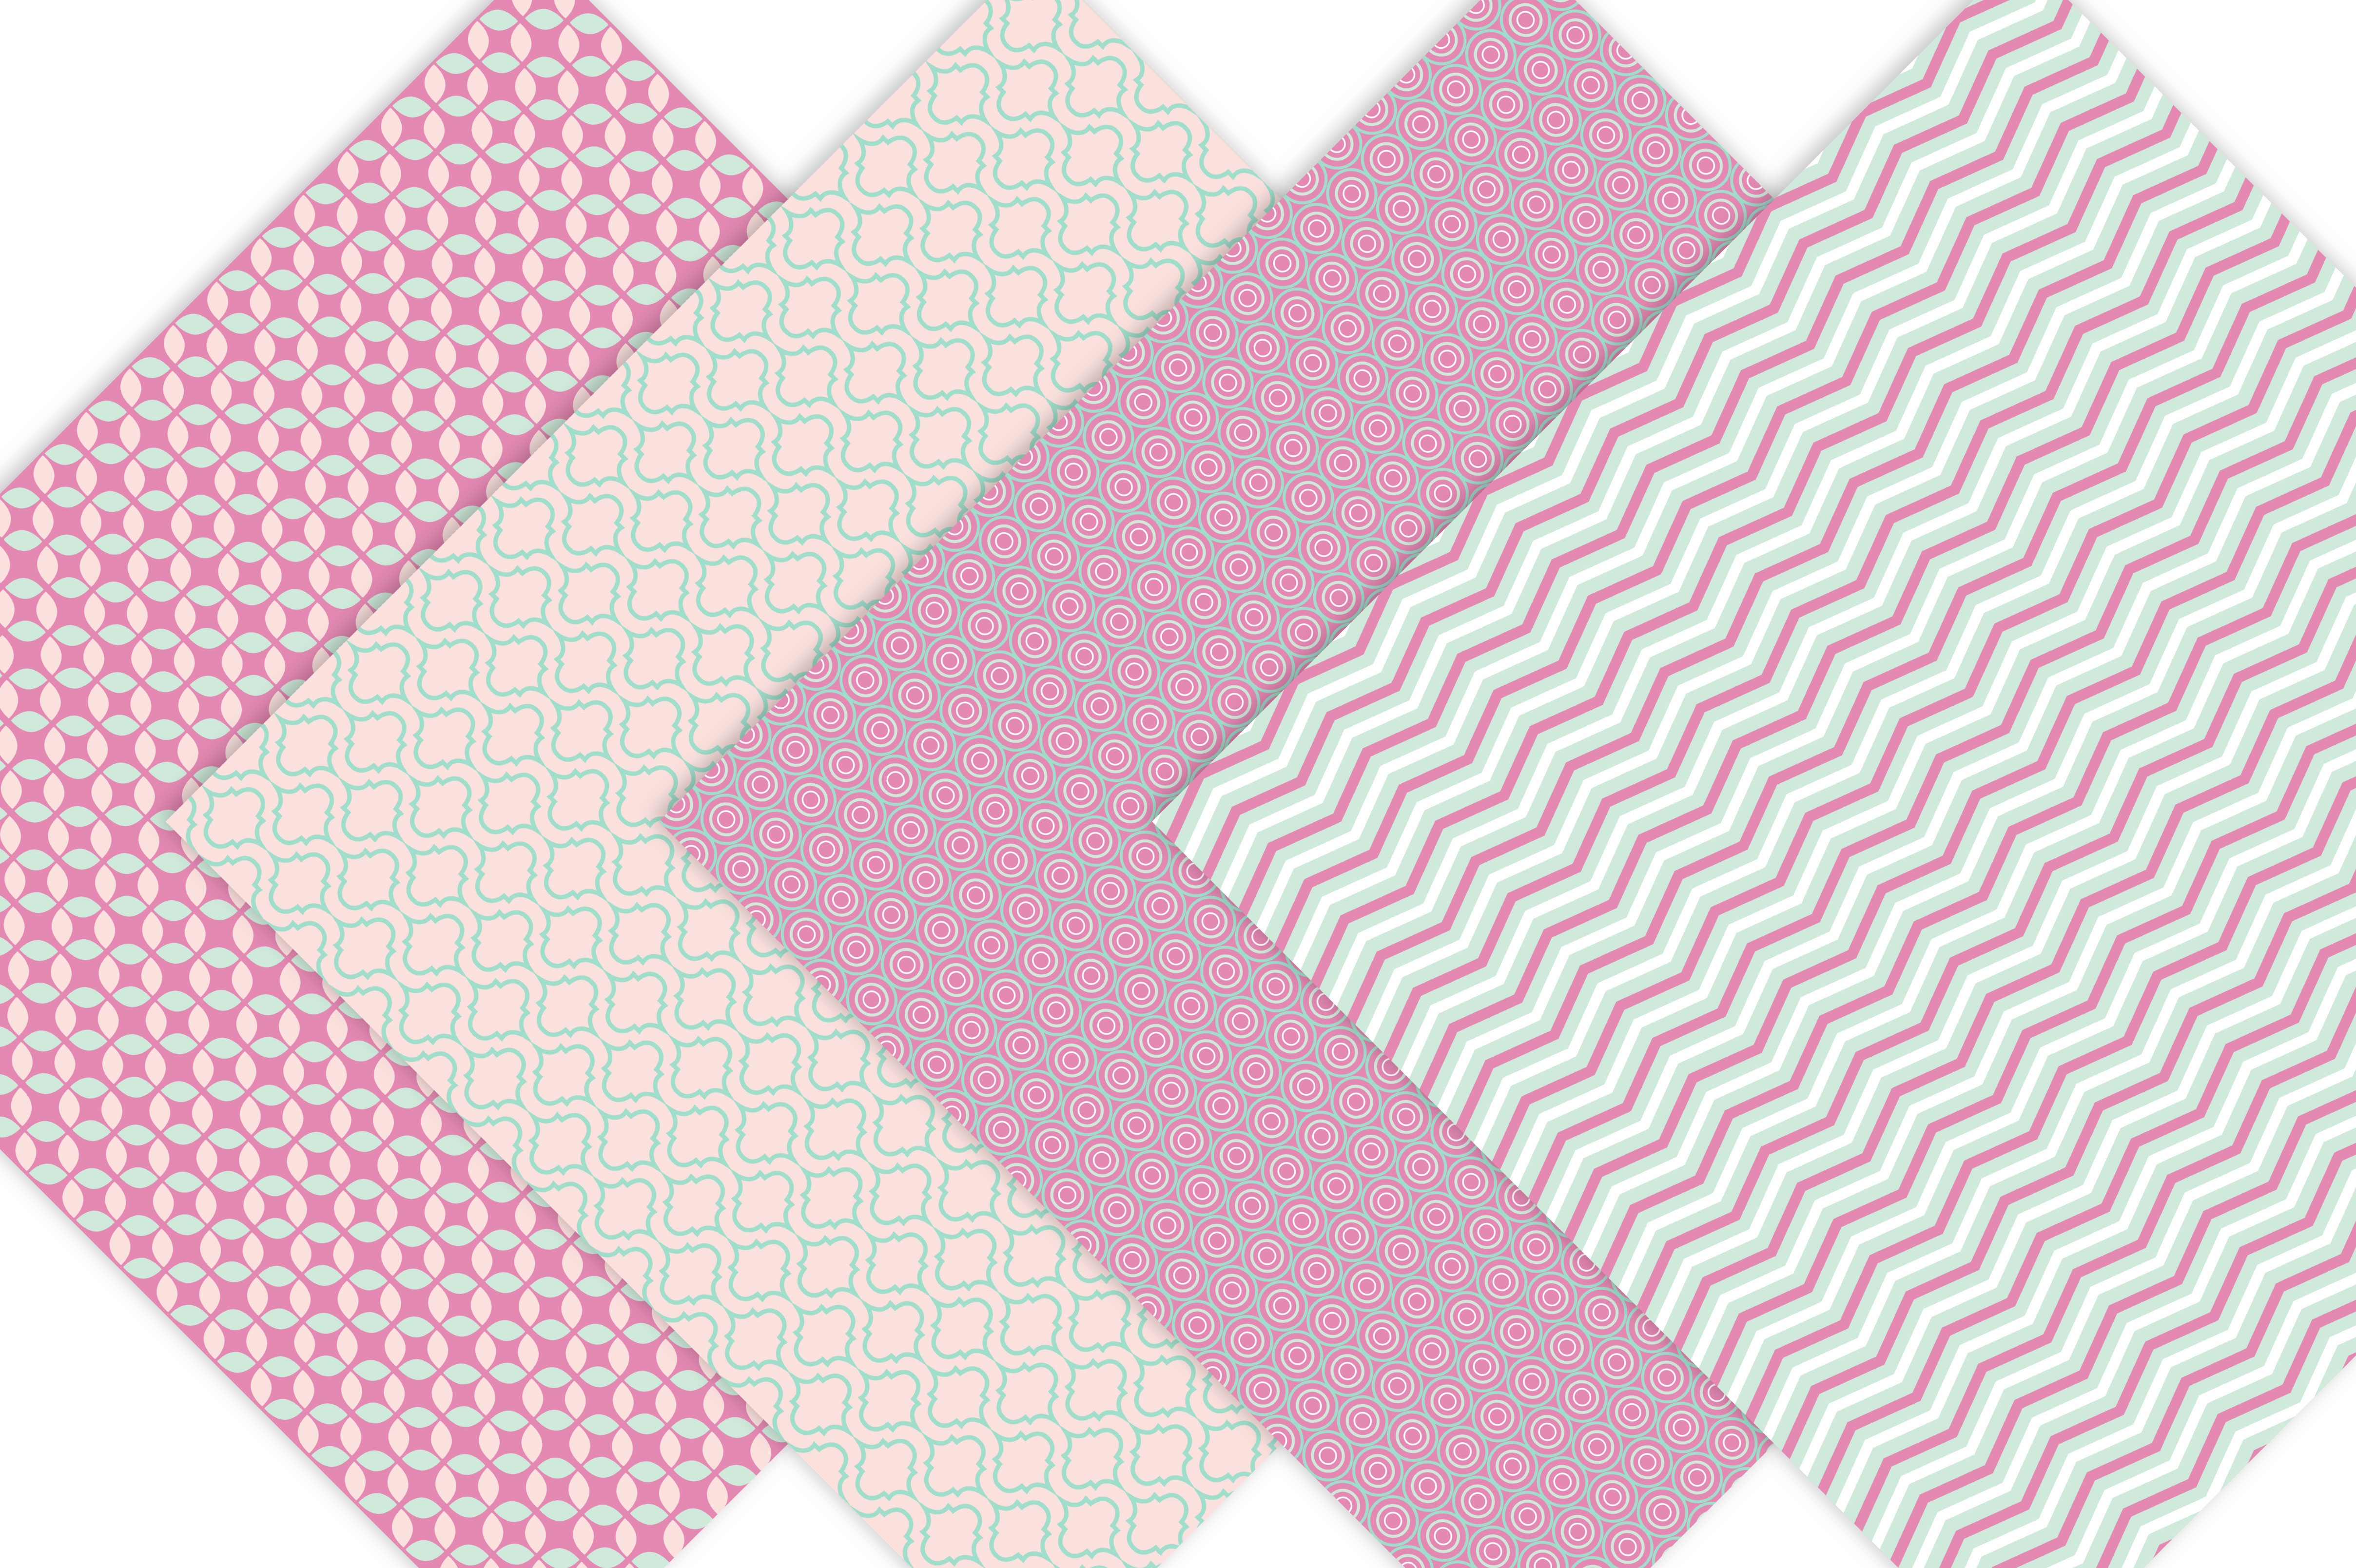 Geometric Digital Paper Patterns example image 5